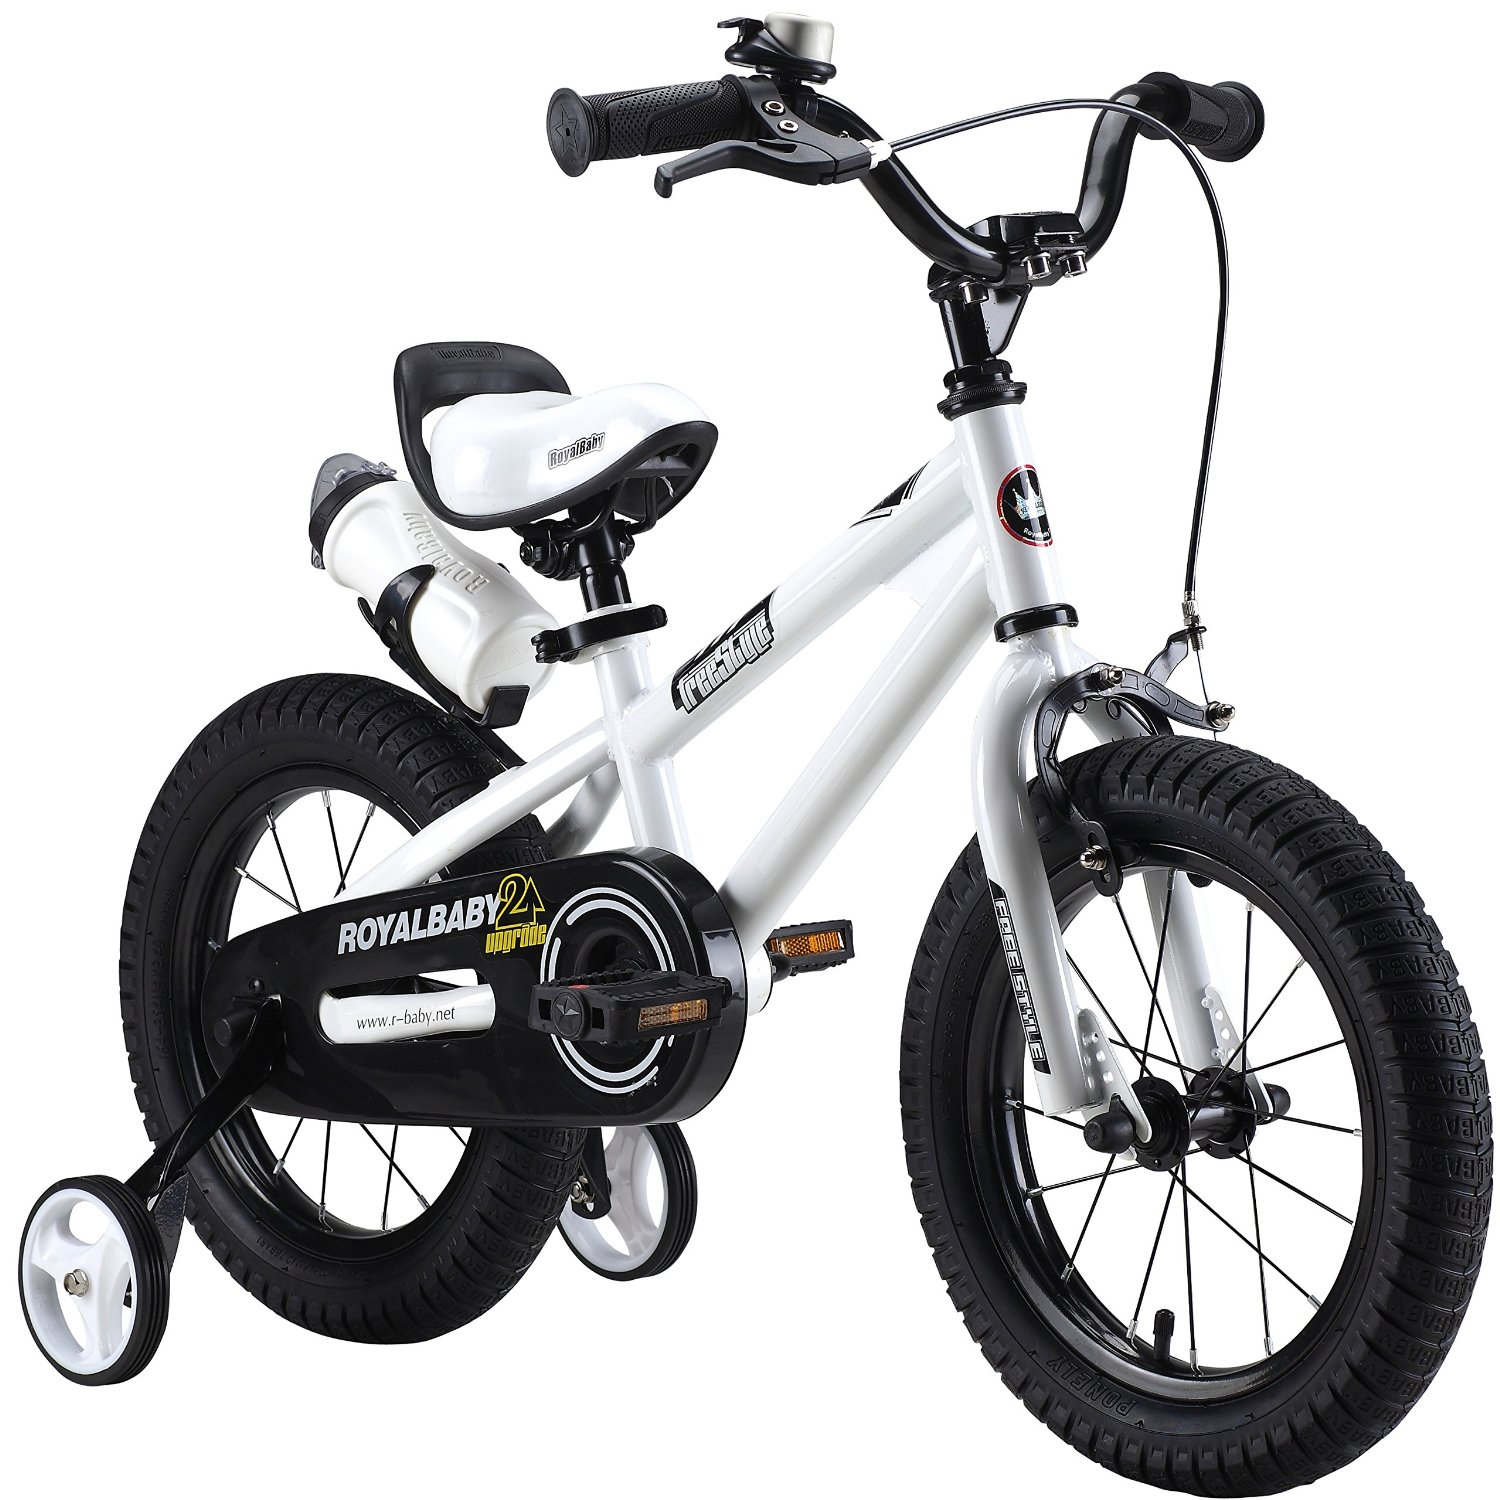 RoyalBaby Bike in White. Kids bike in sizes 12, 14, 16 and 18 inches, available in five solid colors. -- via TheNourishedMama.com